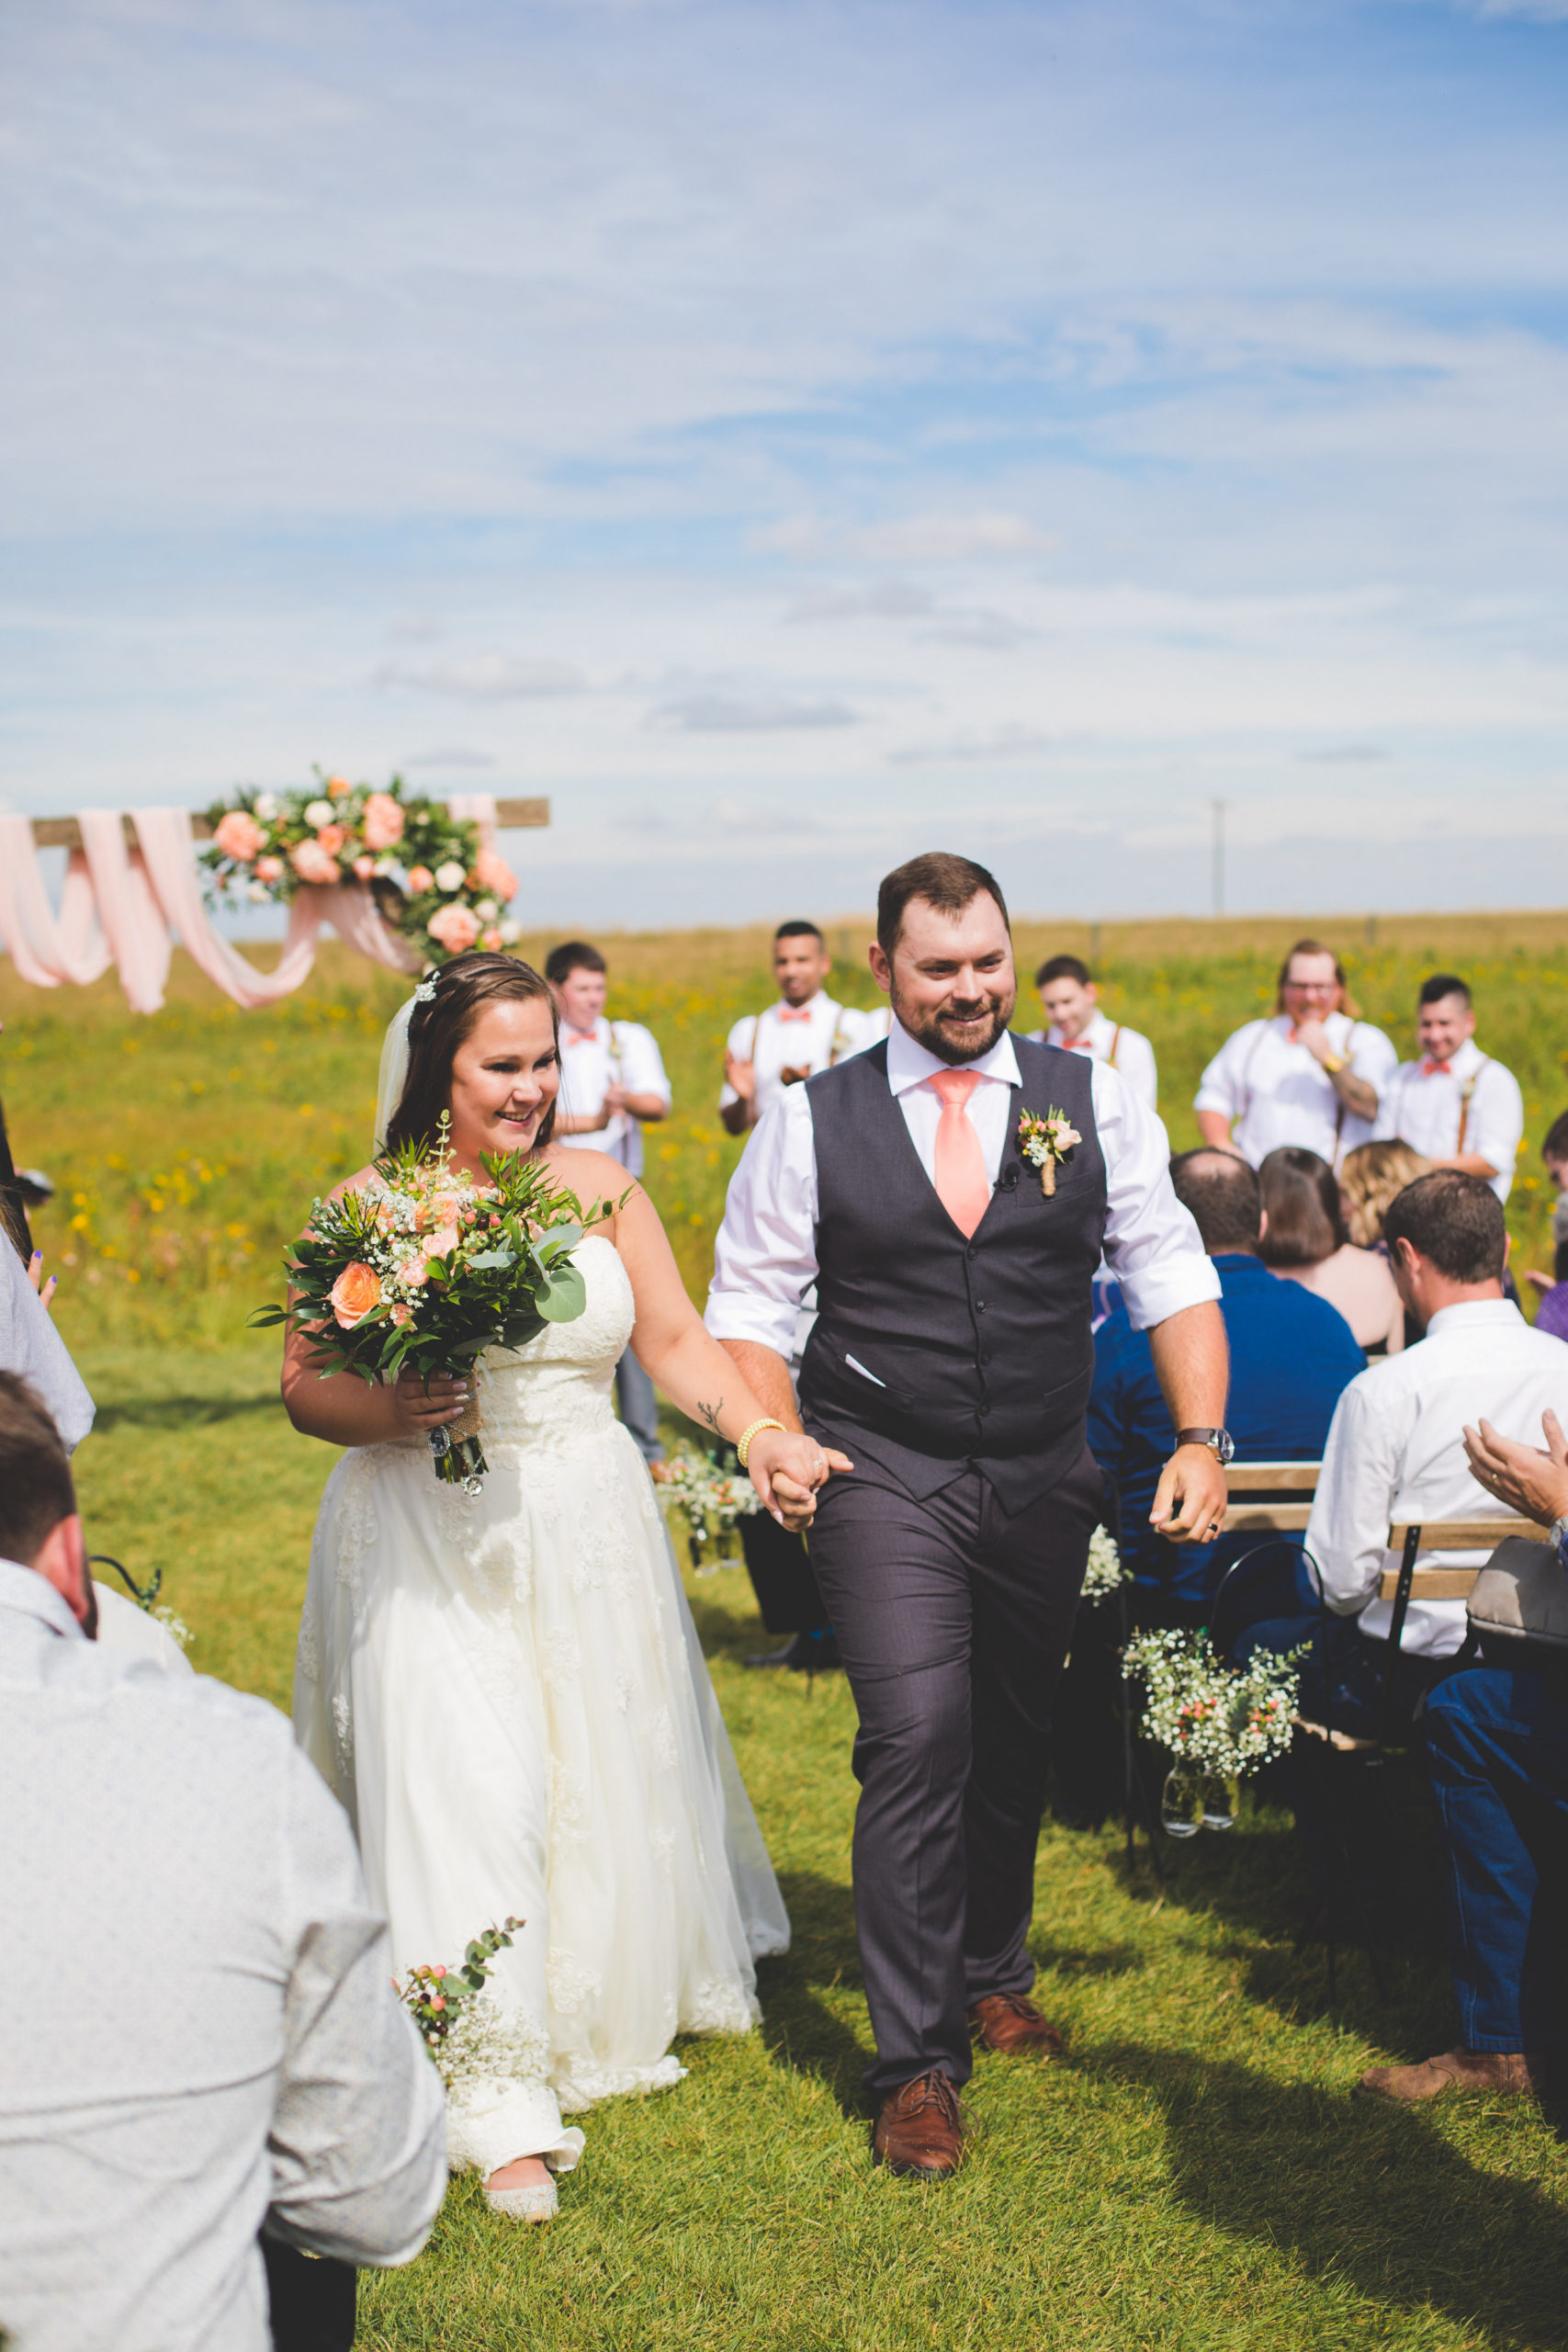 walking down the aisle just married surrounded by prairie fields and pink and coral tones in the decor.